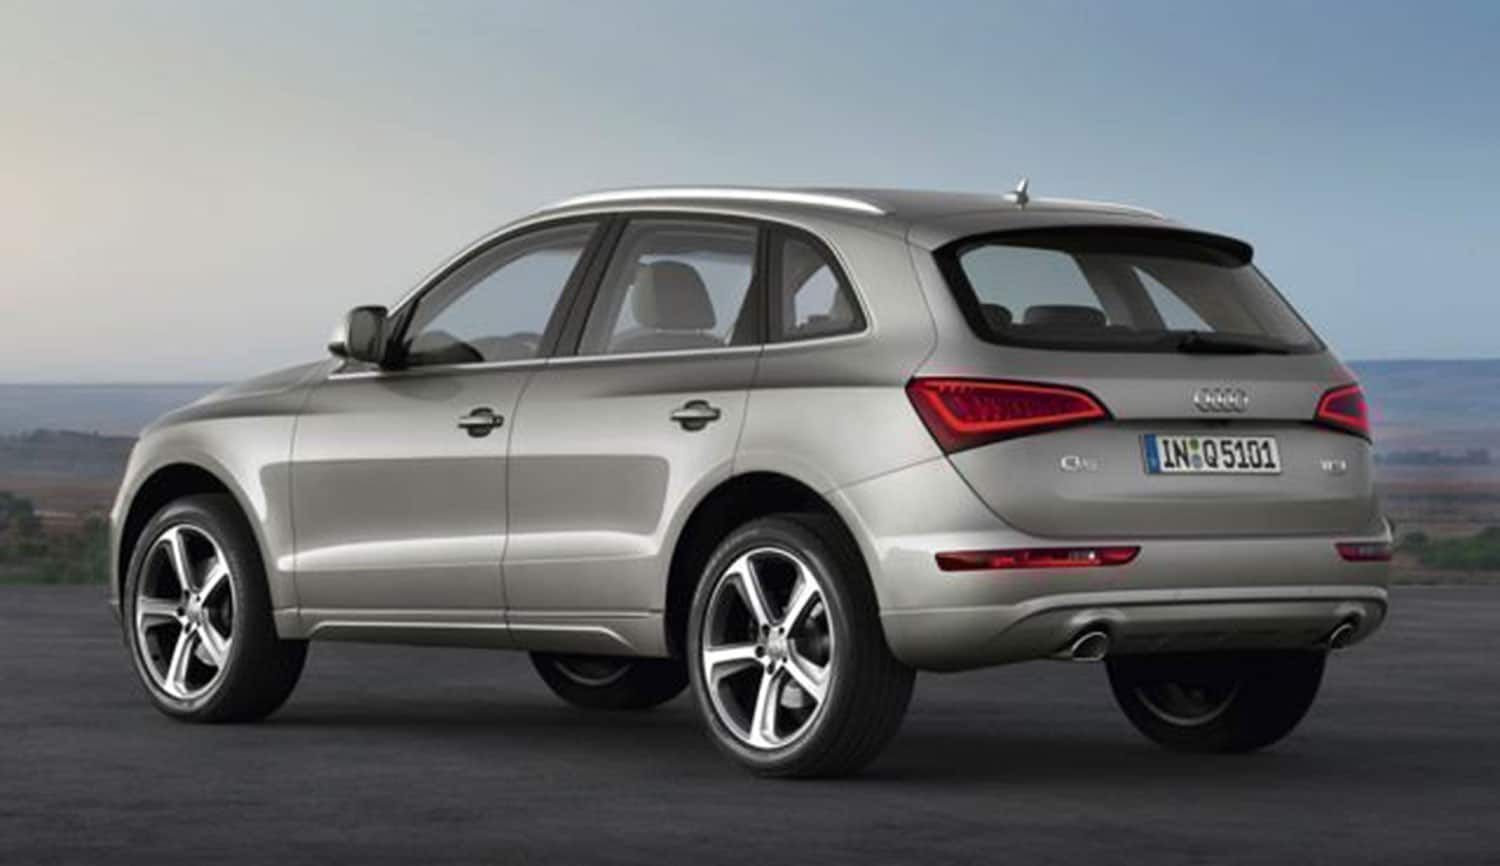 Top 10 most affordable luxury cars autospies auto news - New 2017 Audi Q5 In Parsippany Nj Paul Miller Audi